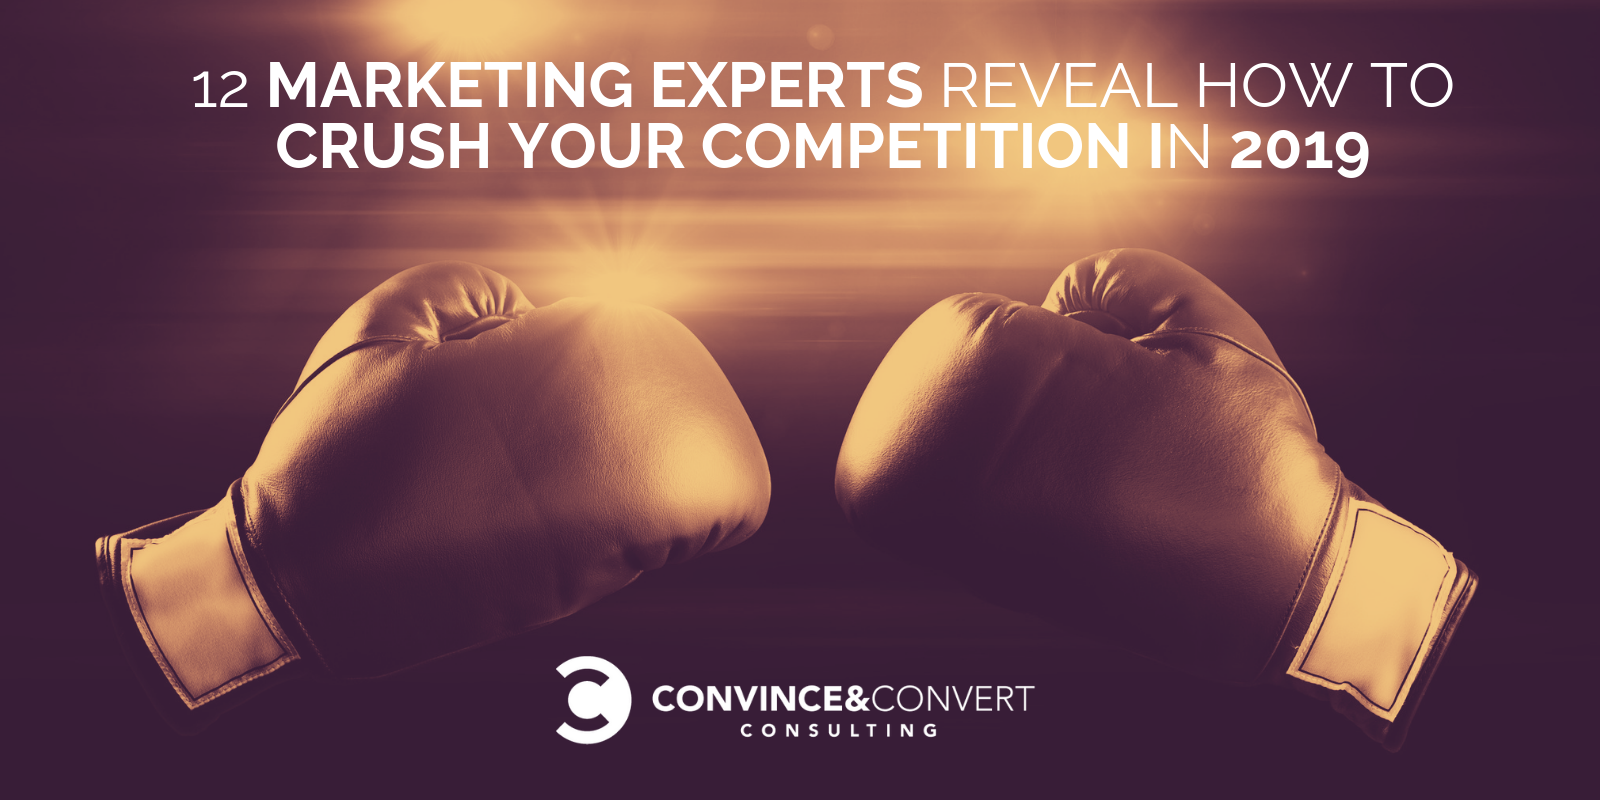 12 Marketing Experts Reveal How to Crush Your Competition in 2019